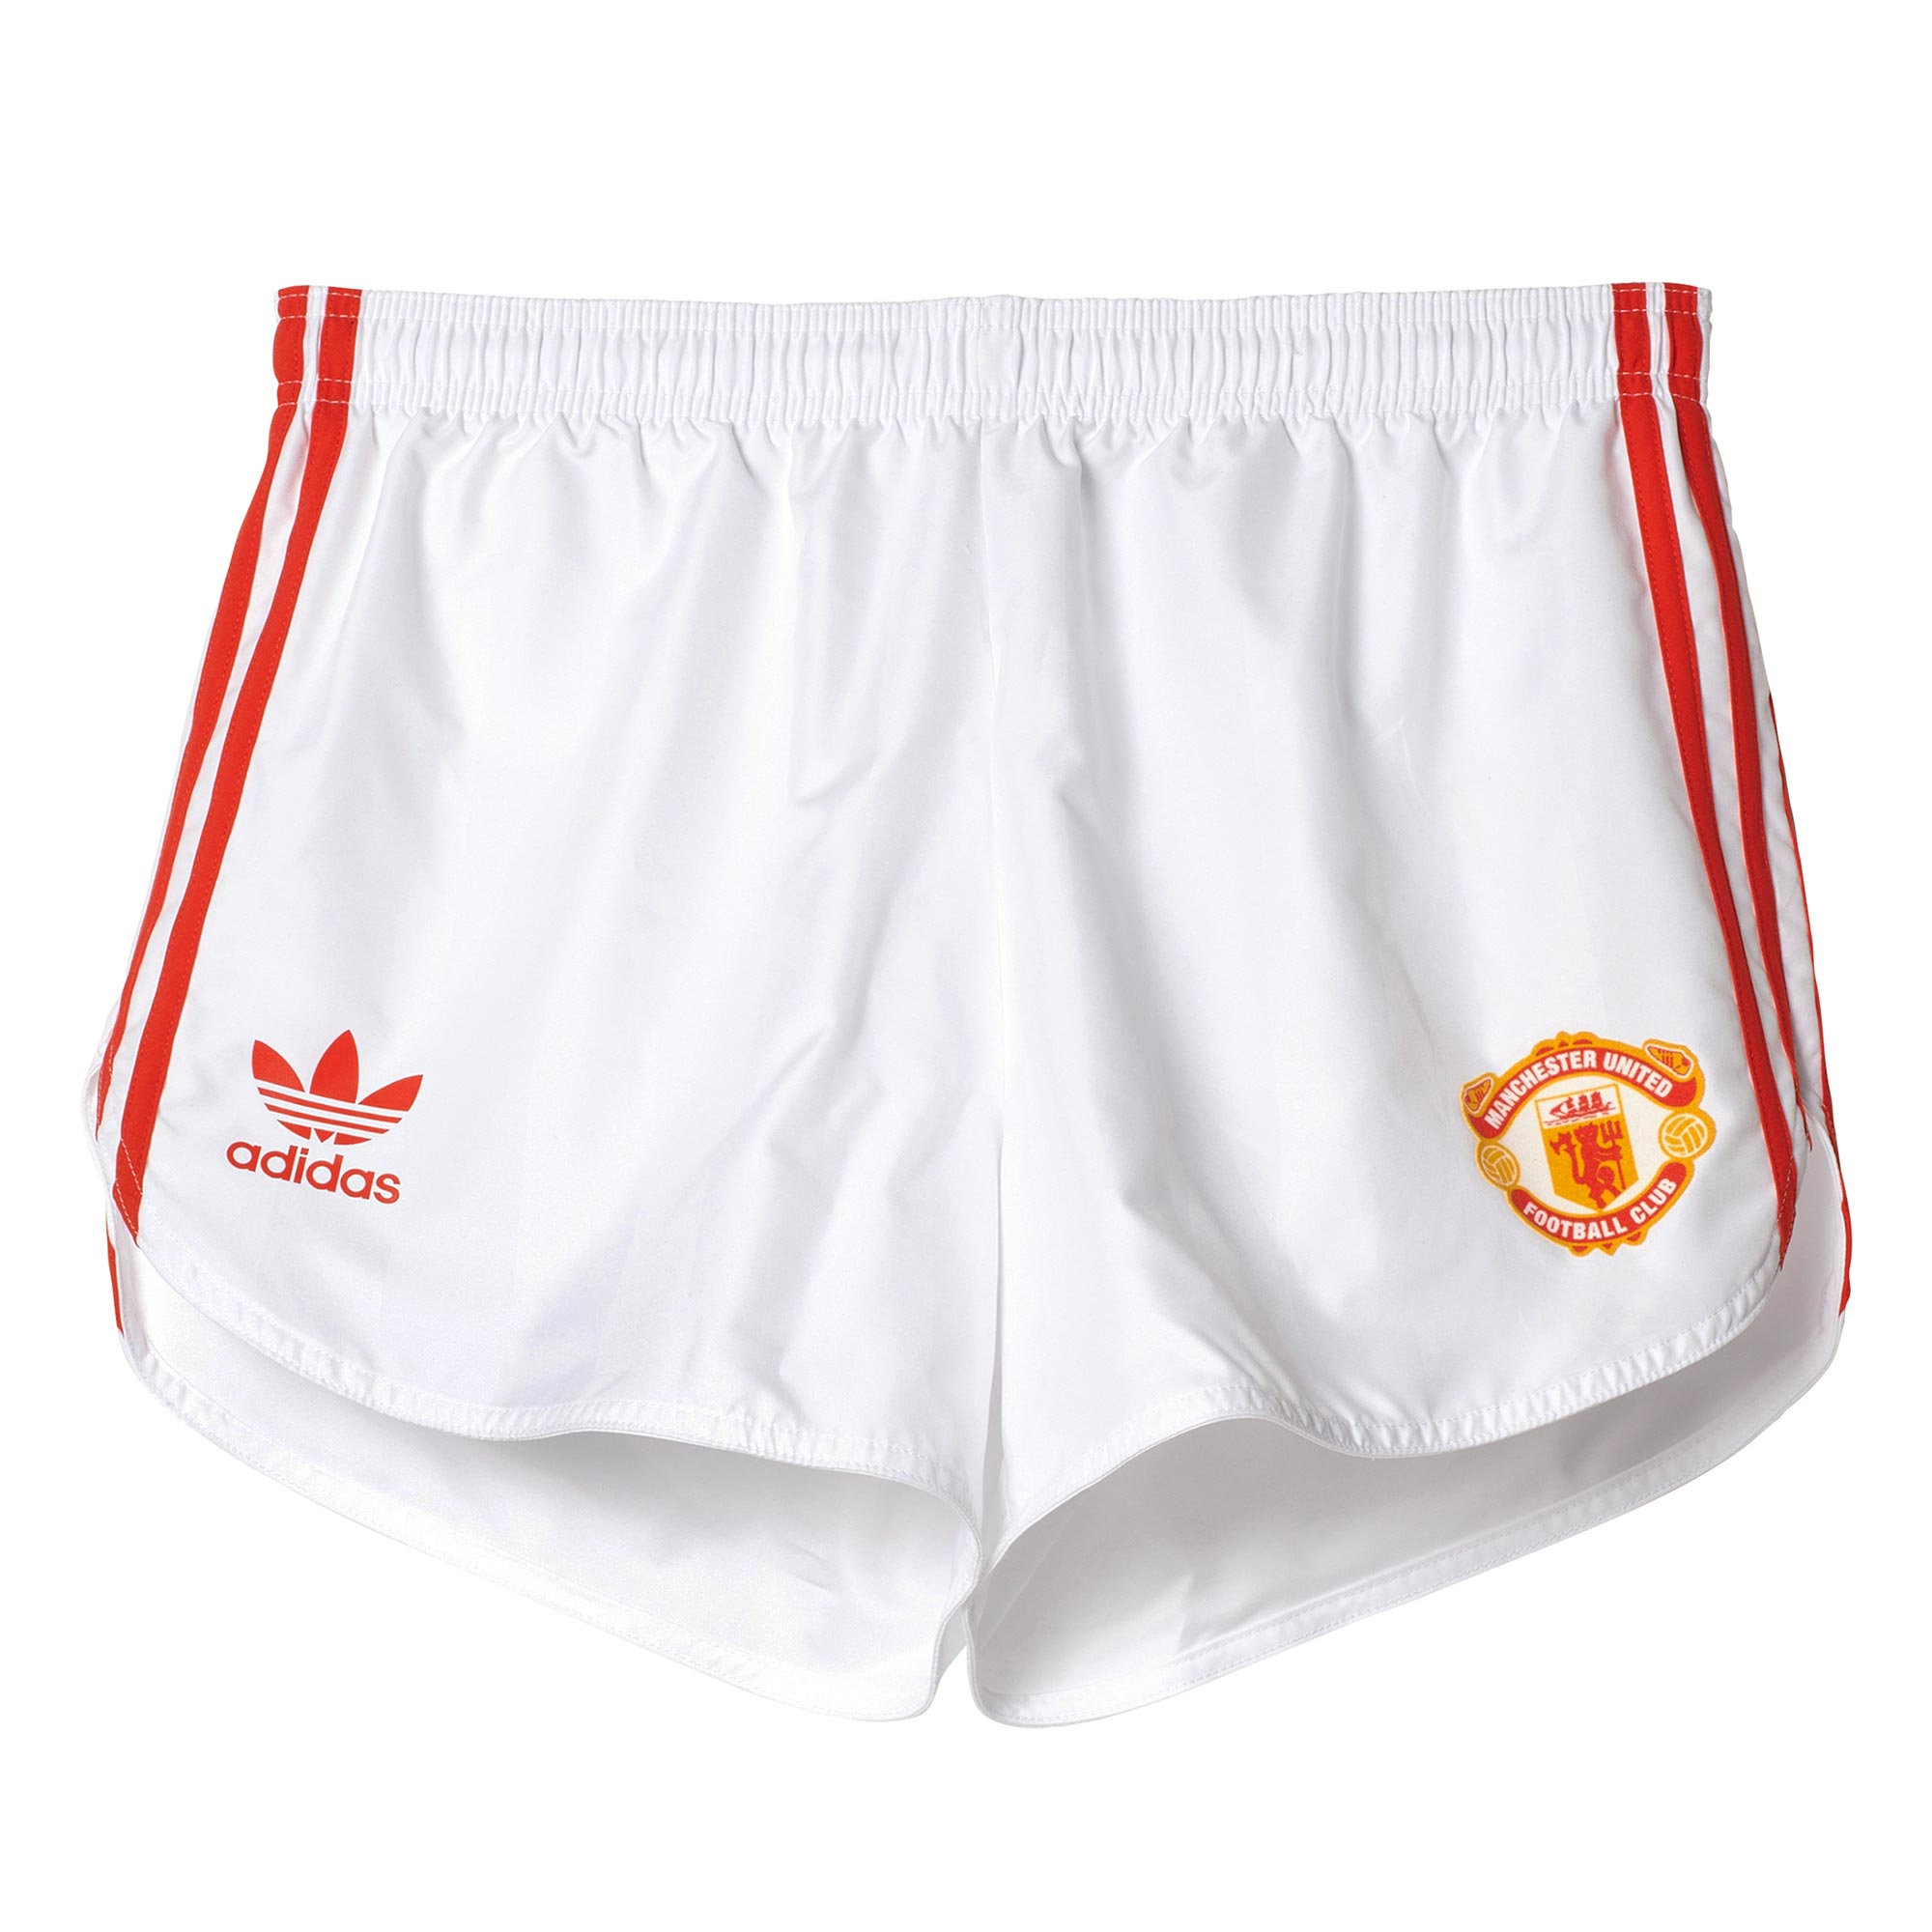 Manchester United Originals Shorts - White